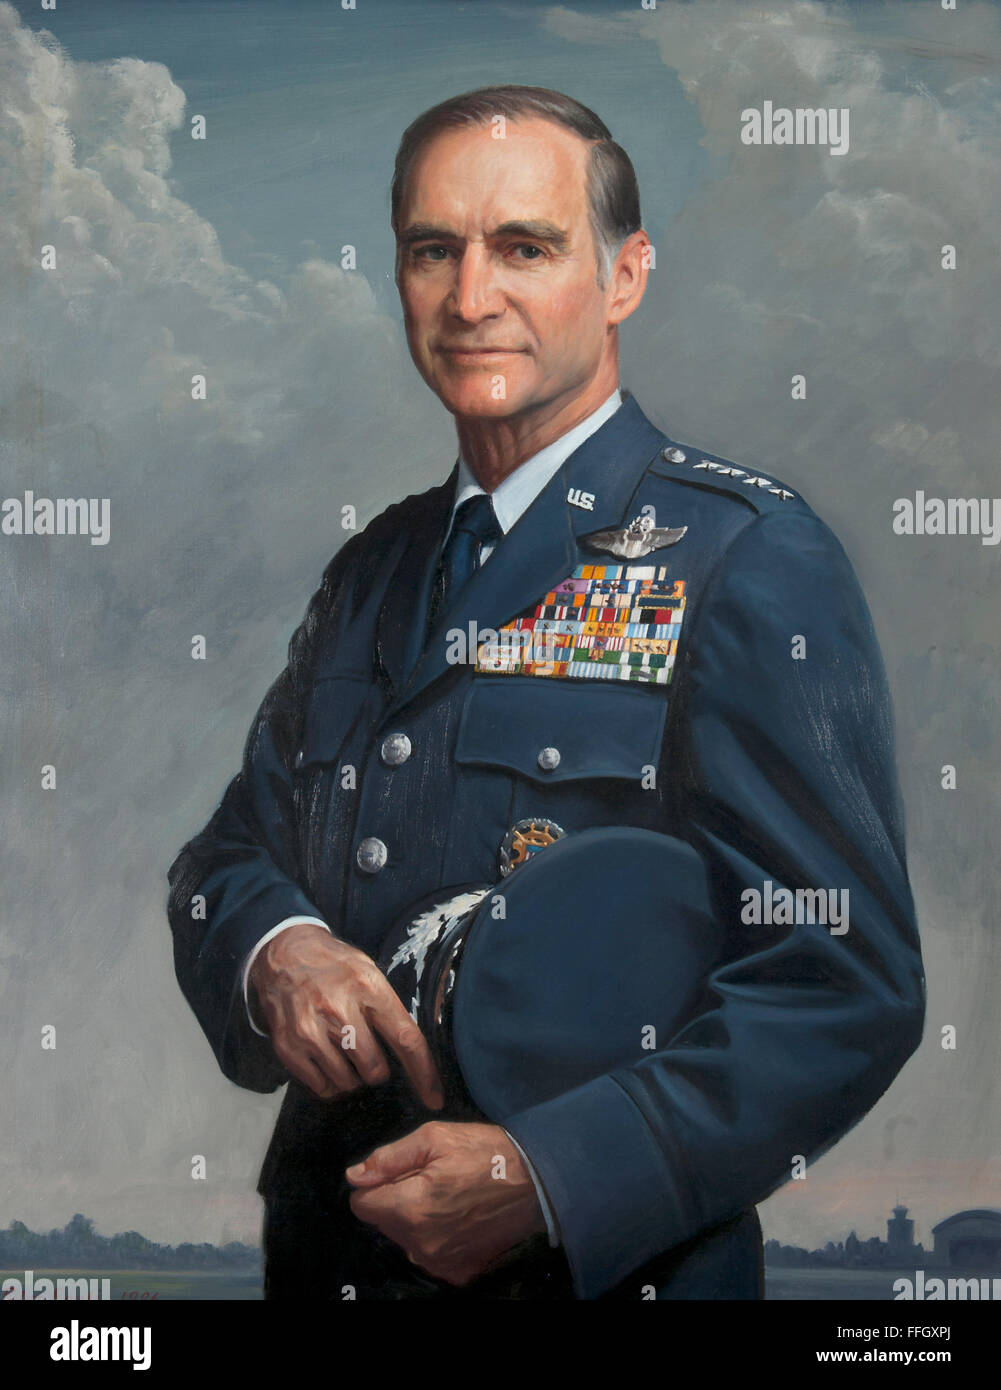 Charles A. Gabriel July 1, 1982 - June 30, 1986  Charles A. Gabriel, a USAF visionary, left two legacies from his - Stock Image